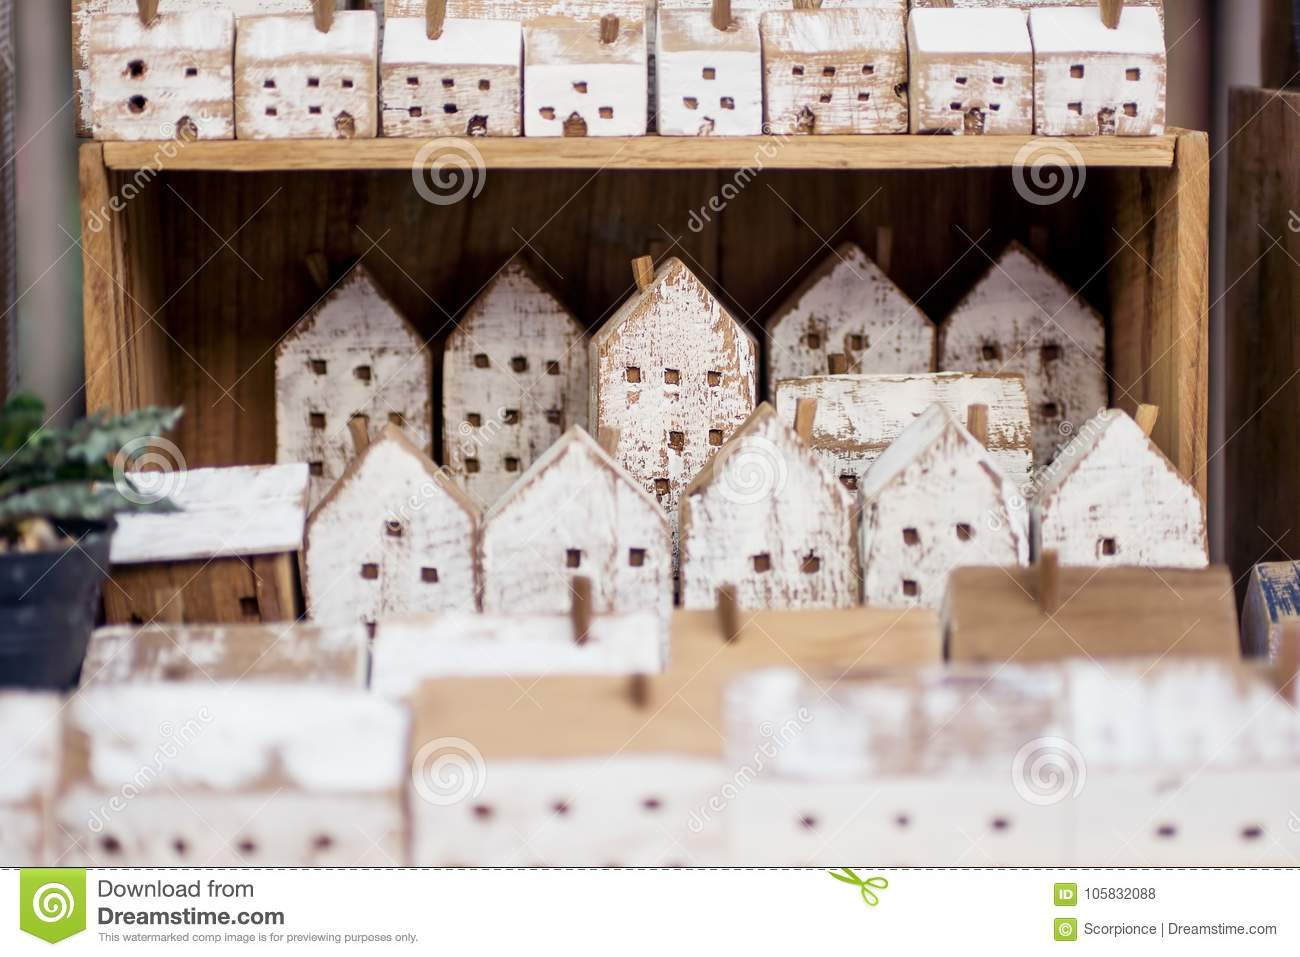 Small Handmade Wooden Houses In A Row On Store Shelf Craft Home